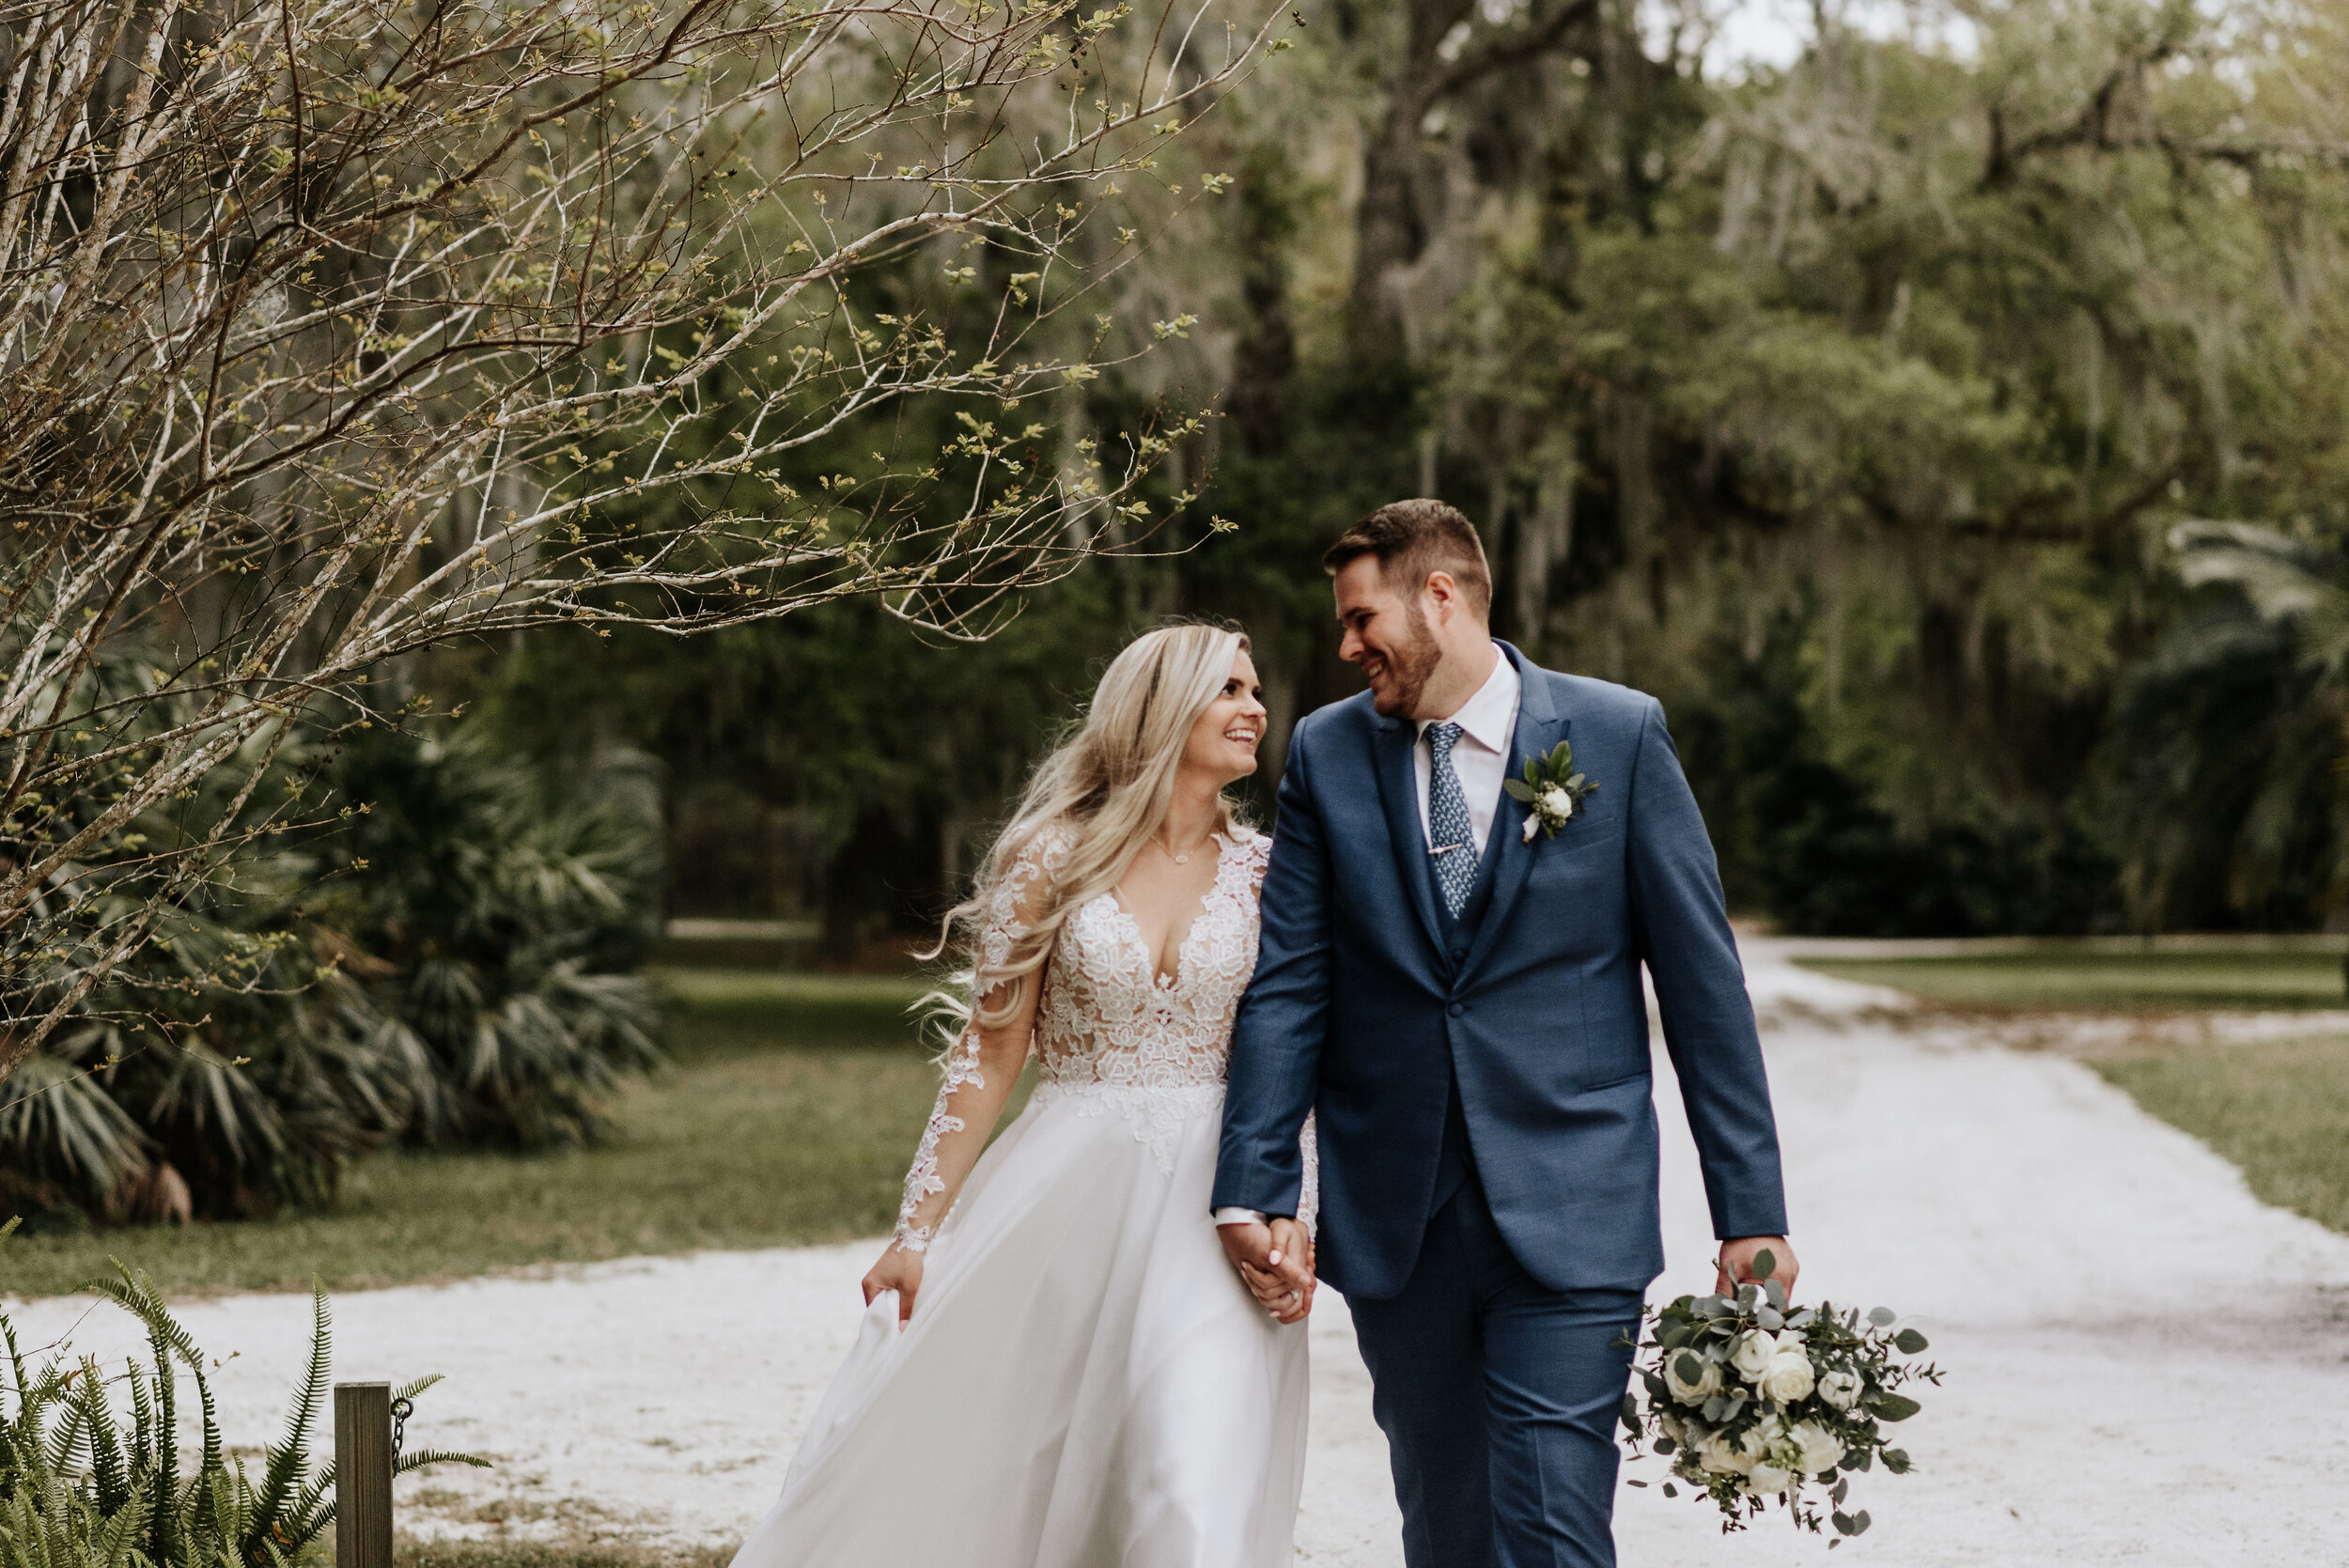 Mikenzi_Brad_Wedding_The_Delamater_House_New_Smyrna_Beach_Florida_Photography_by_V_5343.jpg